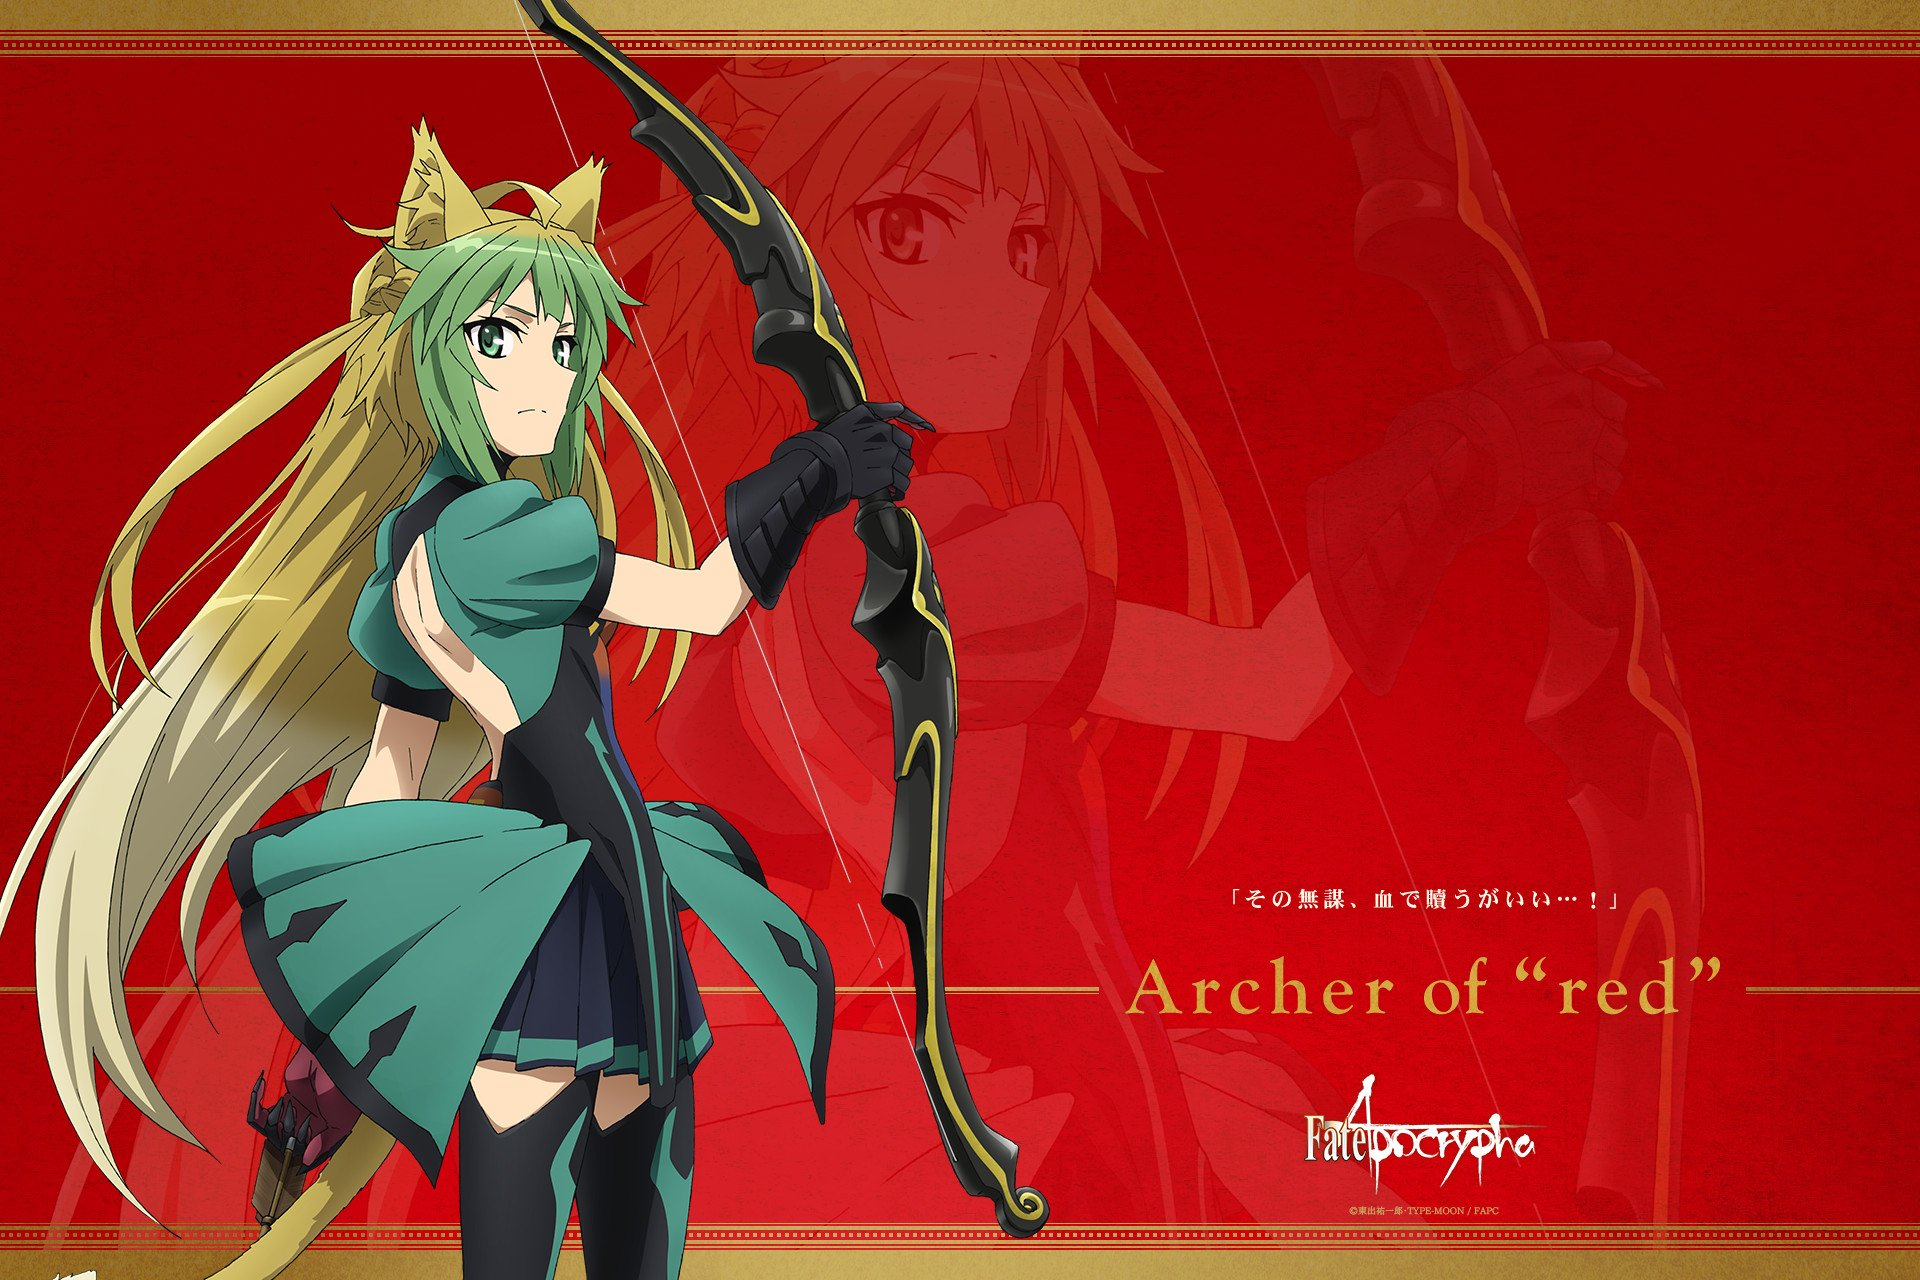 Anime - Fate/Apocrypha Archer of Red (Fate/Apocrypha) Wallpaper